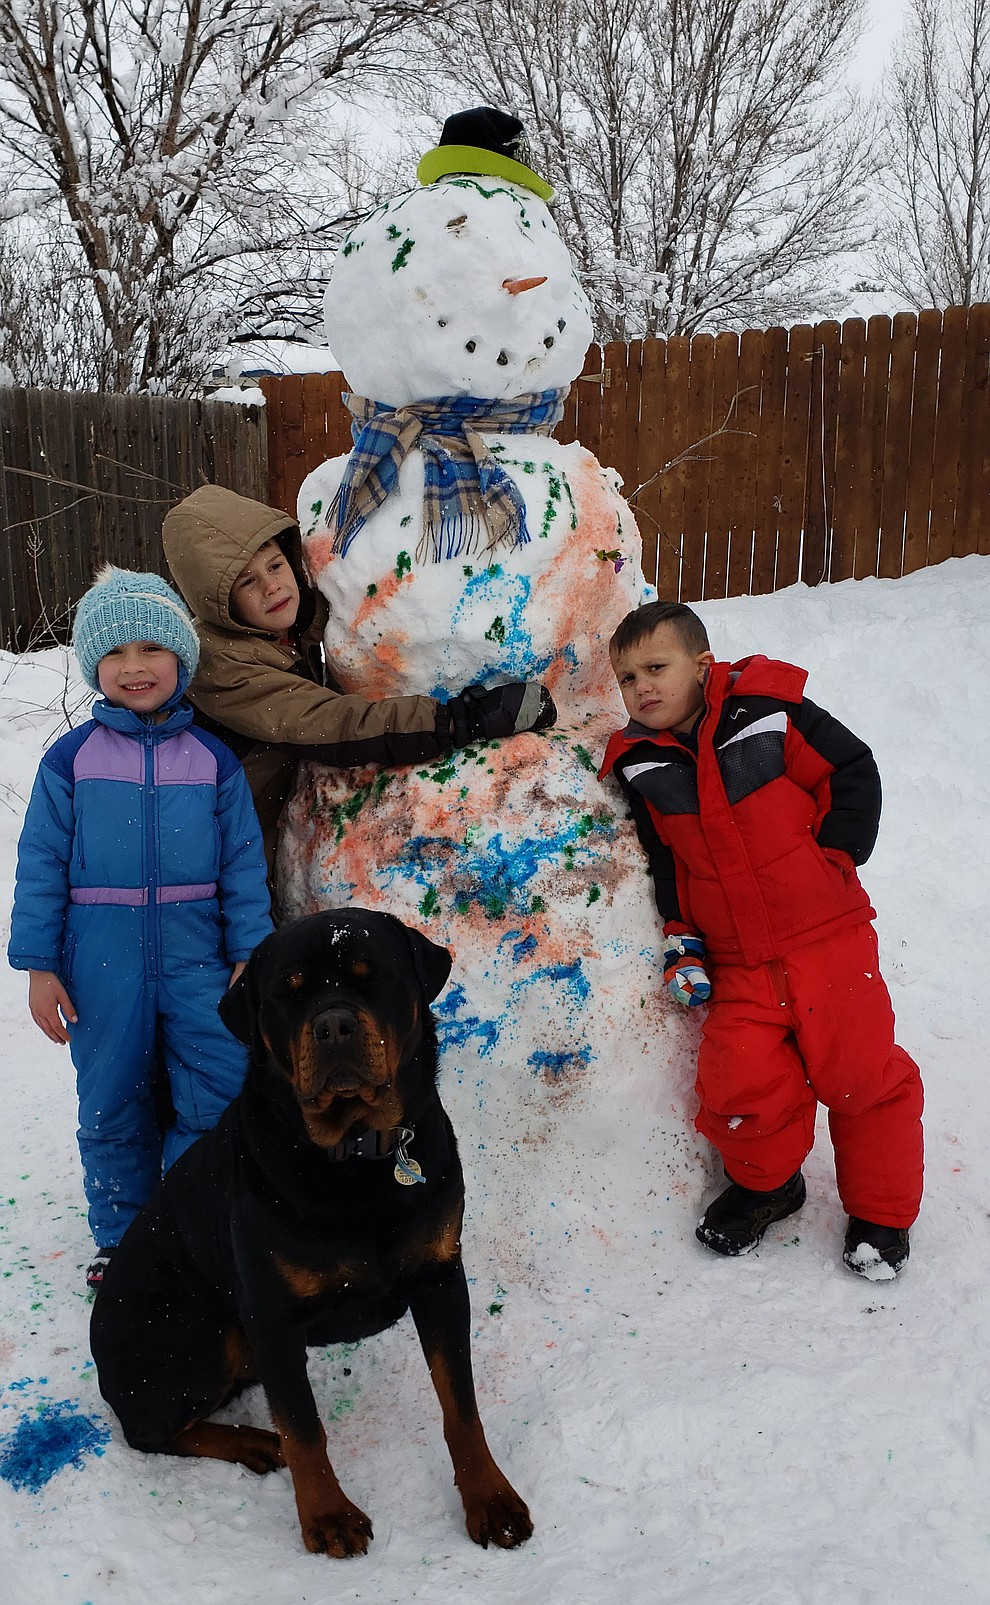 Prescott Valley snowman by Marie Cundiff